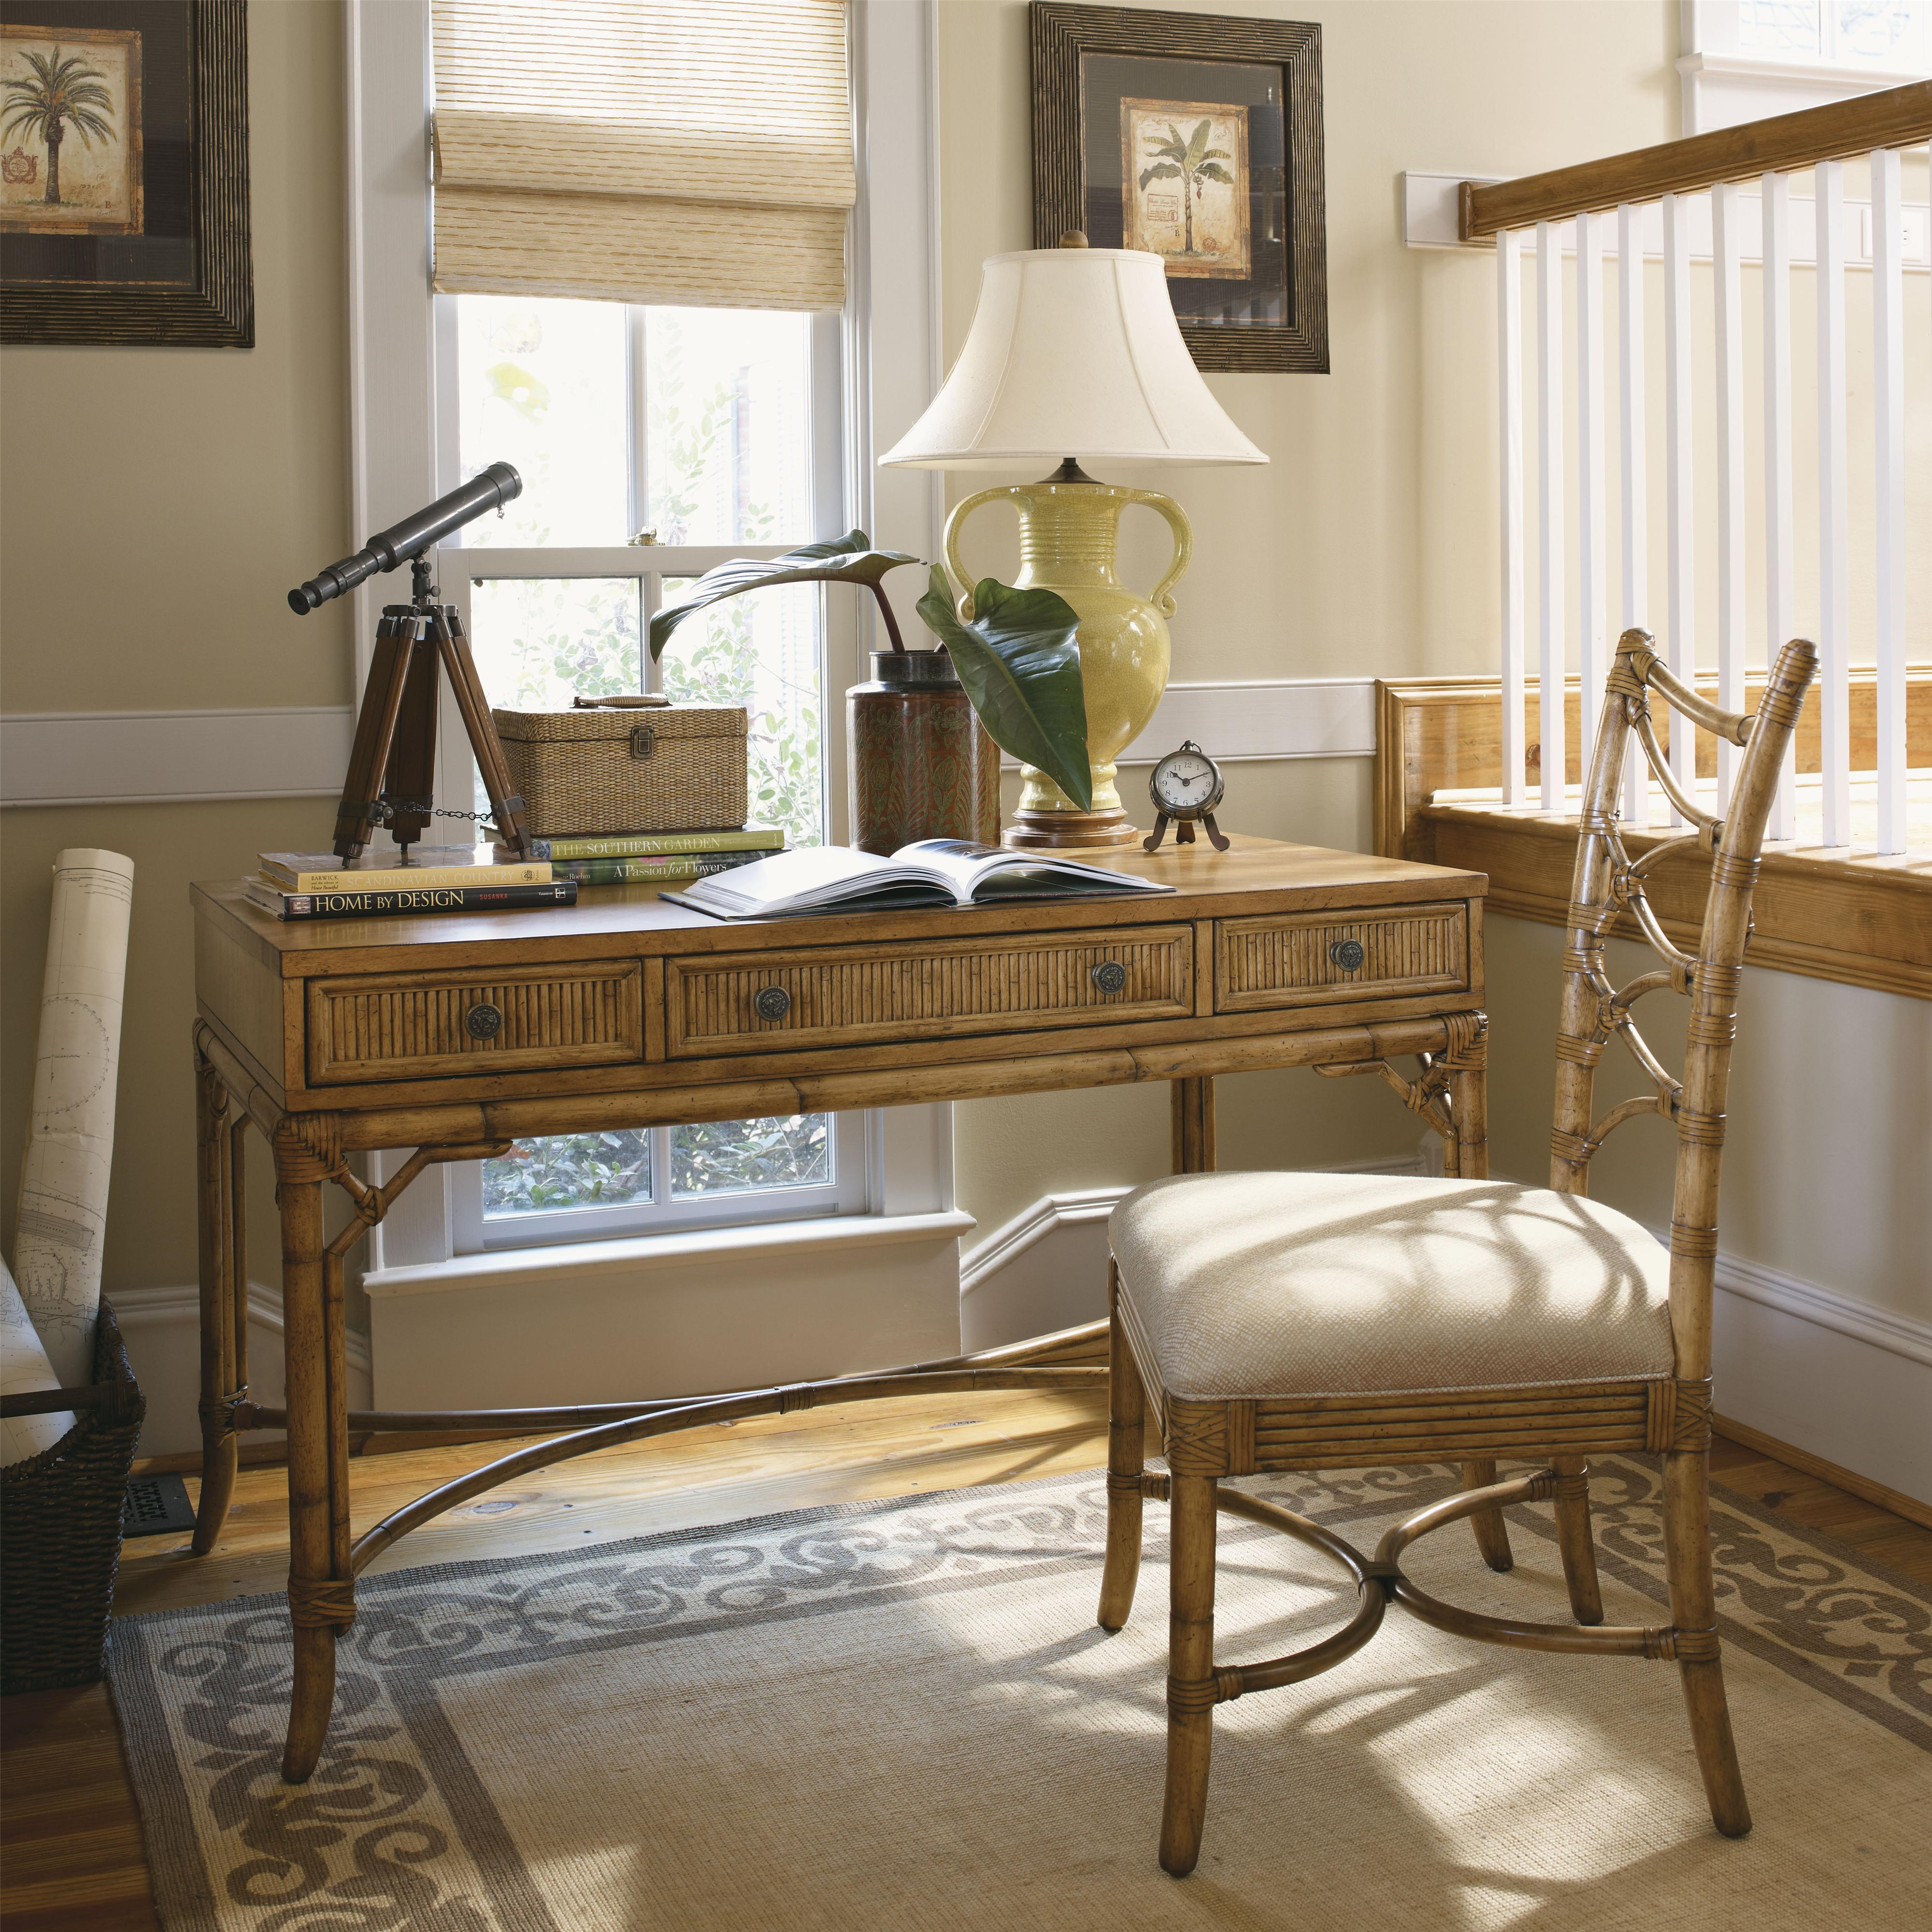 beach house 5701 61 by tommy bahama home baer 39 s furniture tommy bahama home beach house dealer. Black Bedroom Furniture Sets. Home Design Ideas